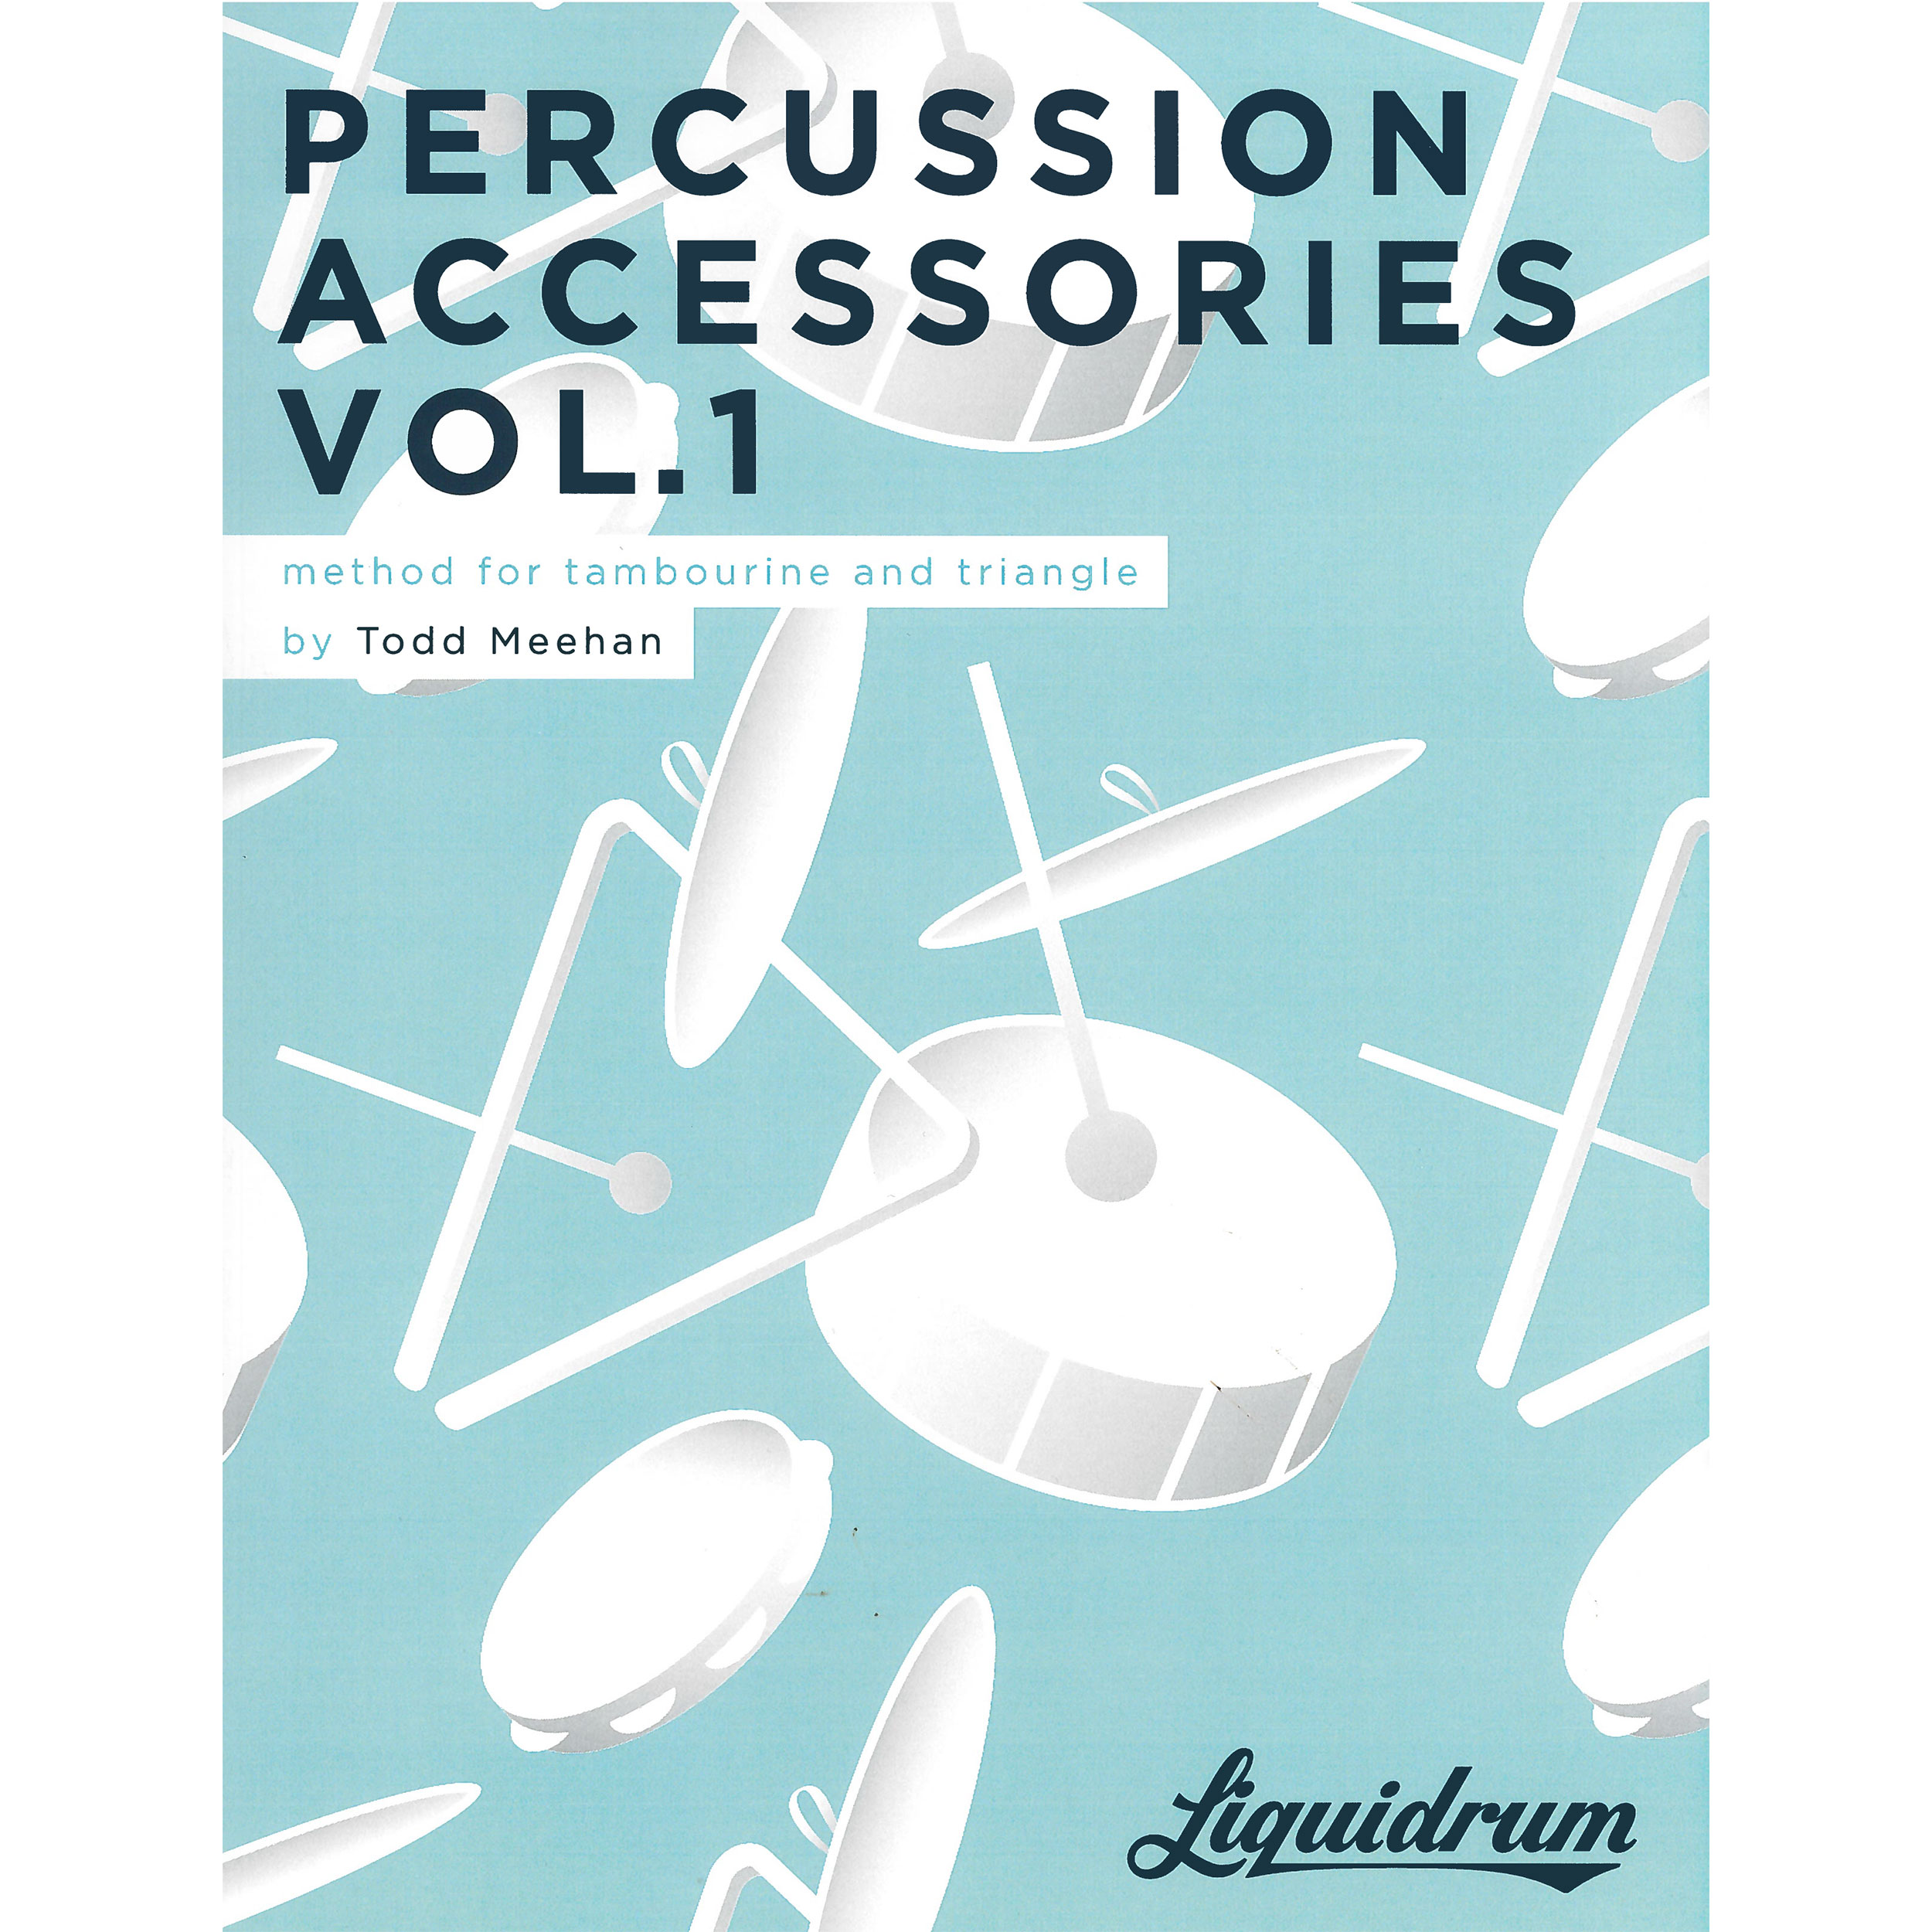 Percussion Accessories Vol. 1 by Todd Meehan